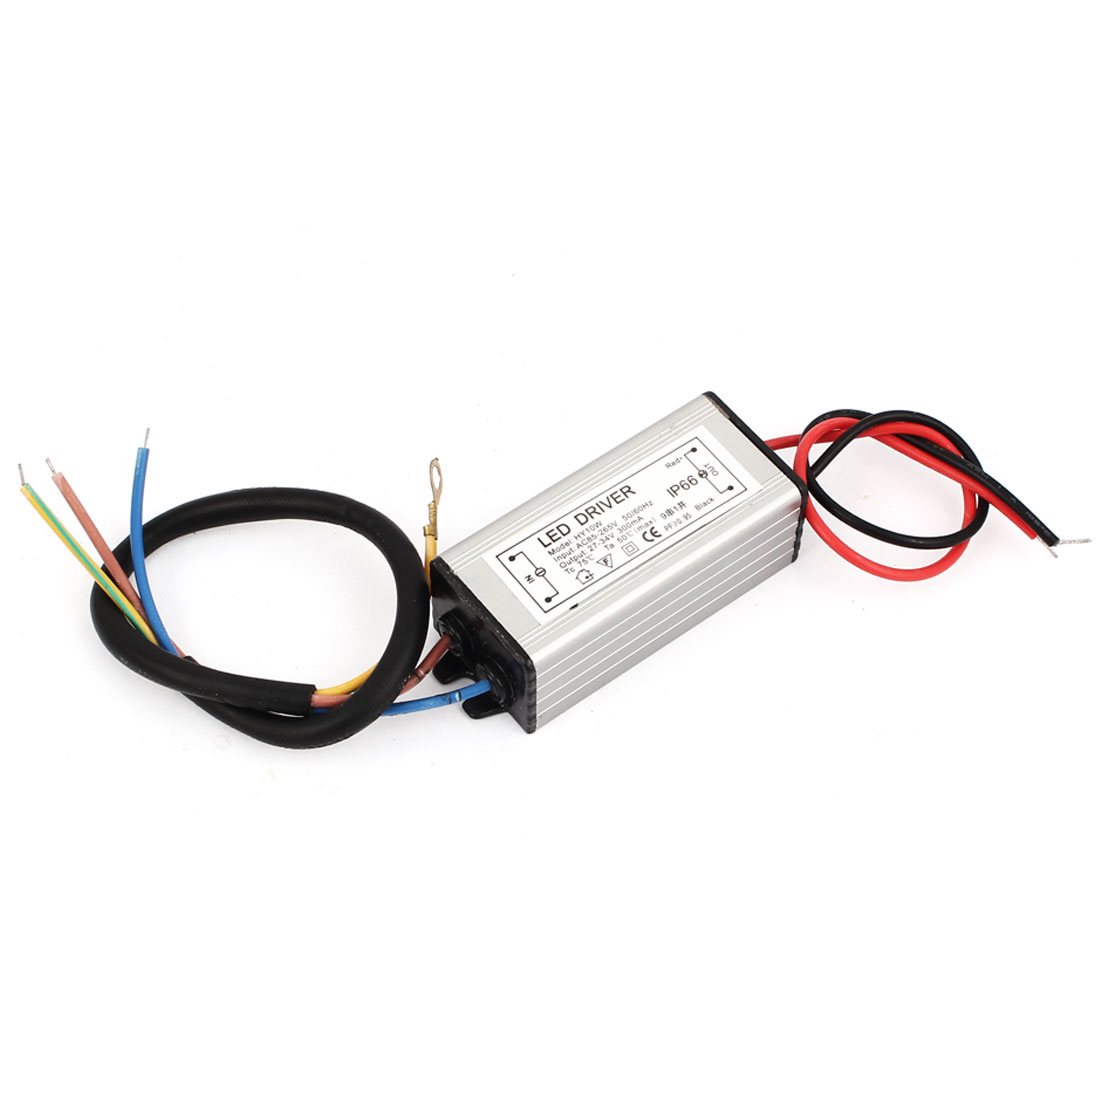 AC85-265V to DC27-34V 10W Transformer Waterproof LED Driver Power Supply